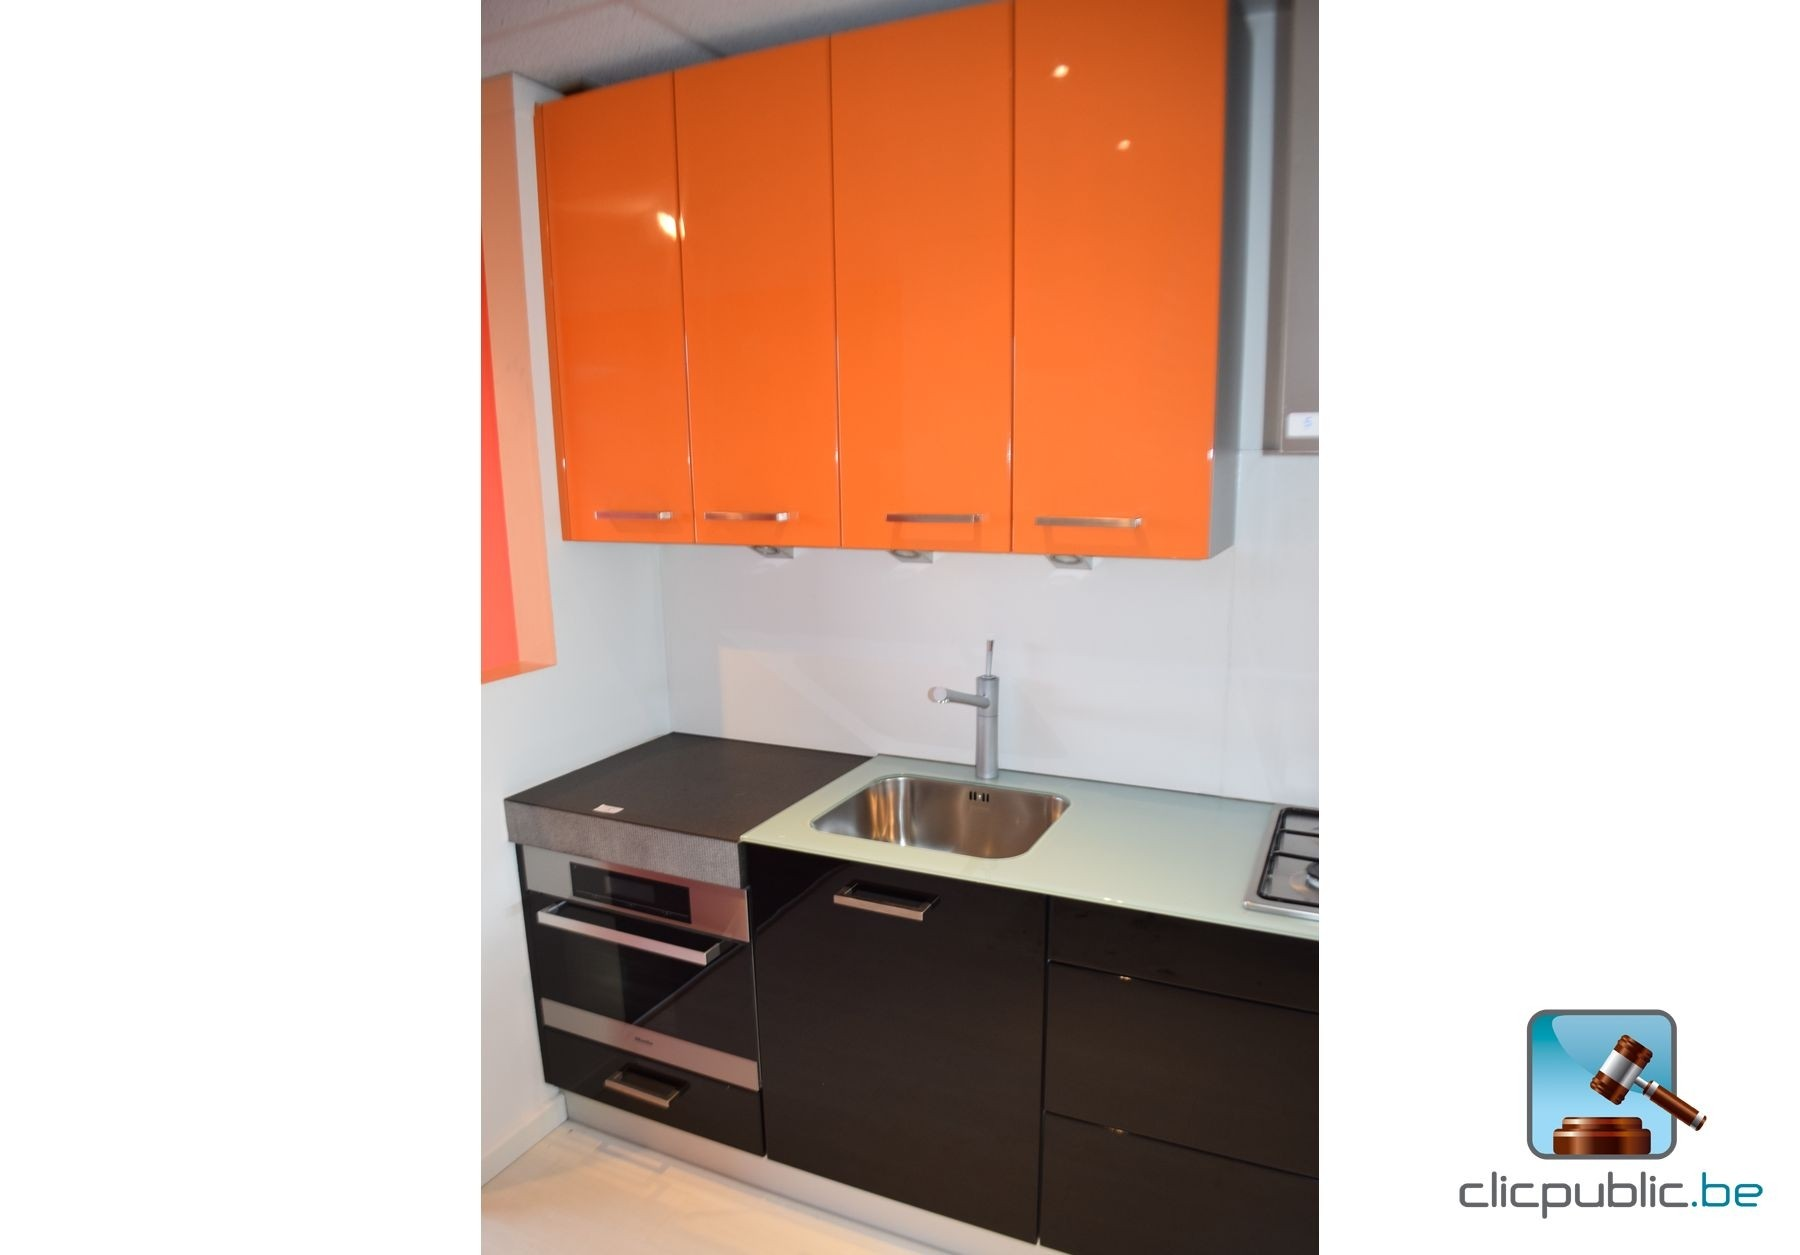 Furnished kitchen orange et noir plan de travail topglass for Cuisine orange et noir